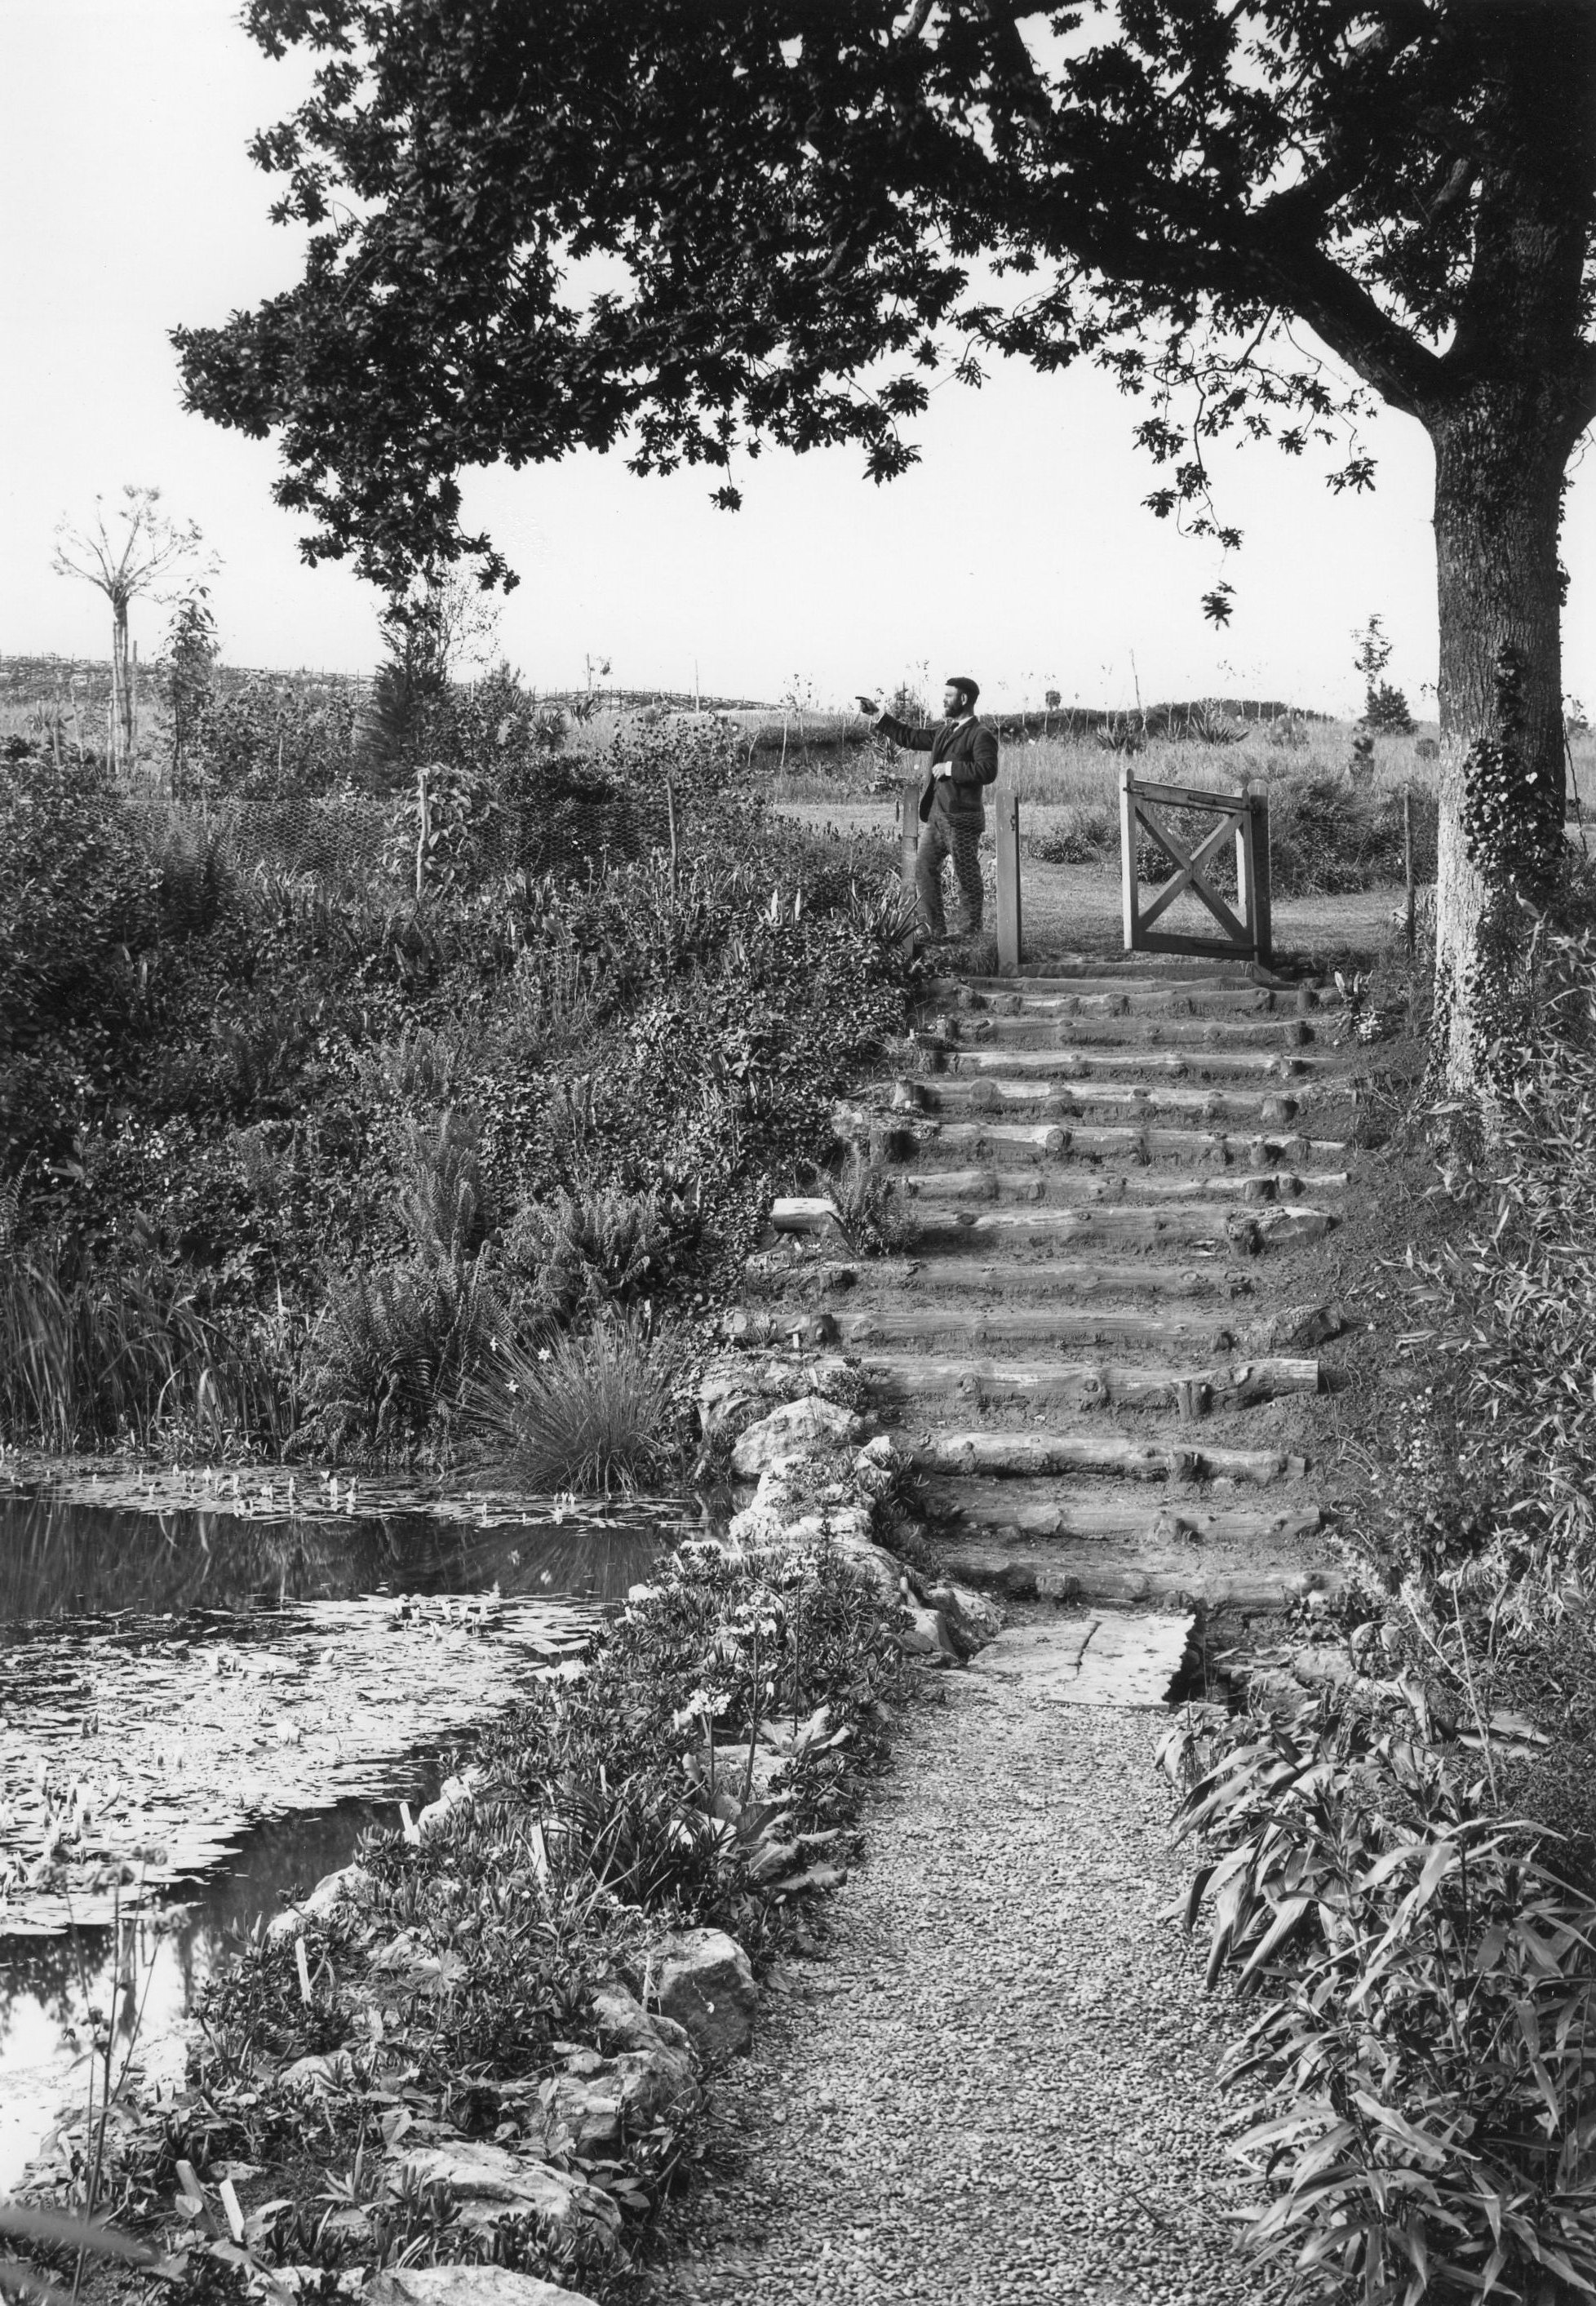 The Top Pond in 1898